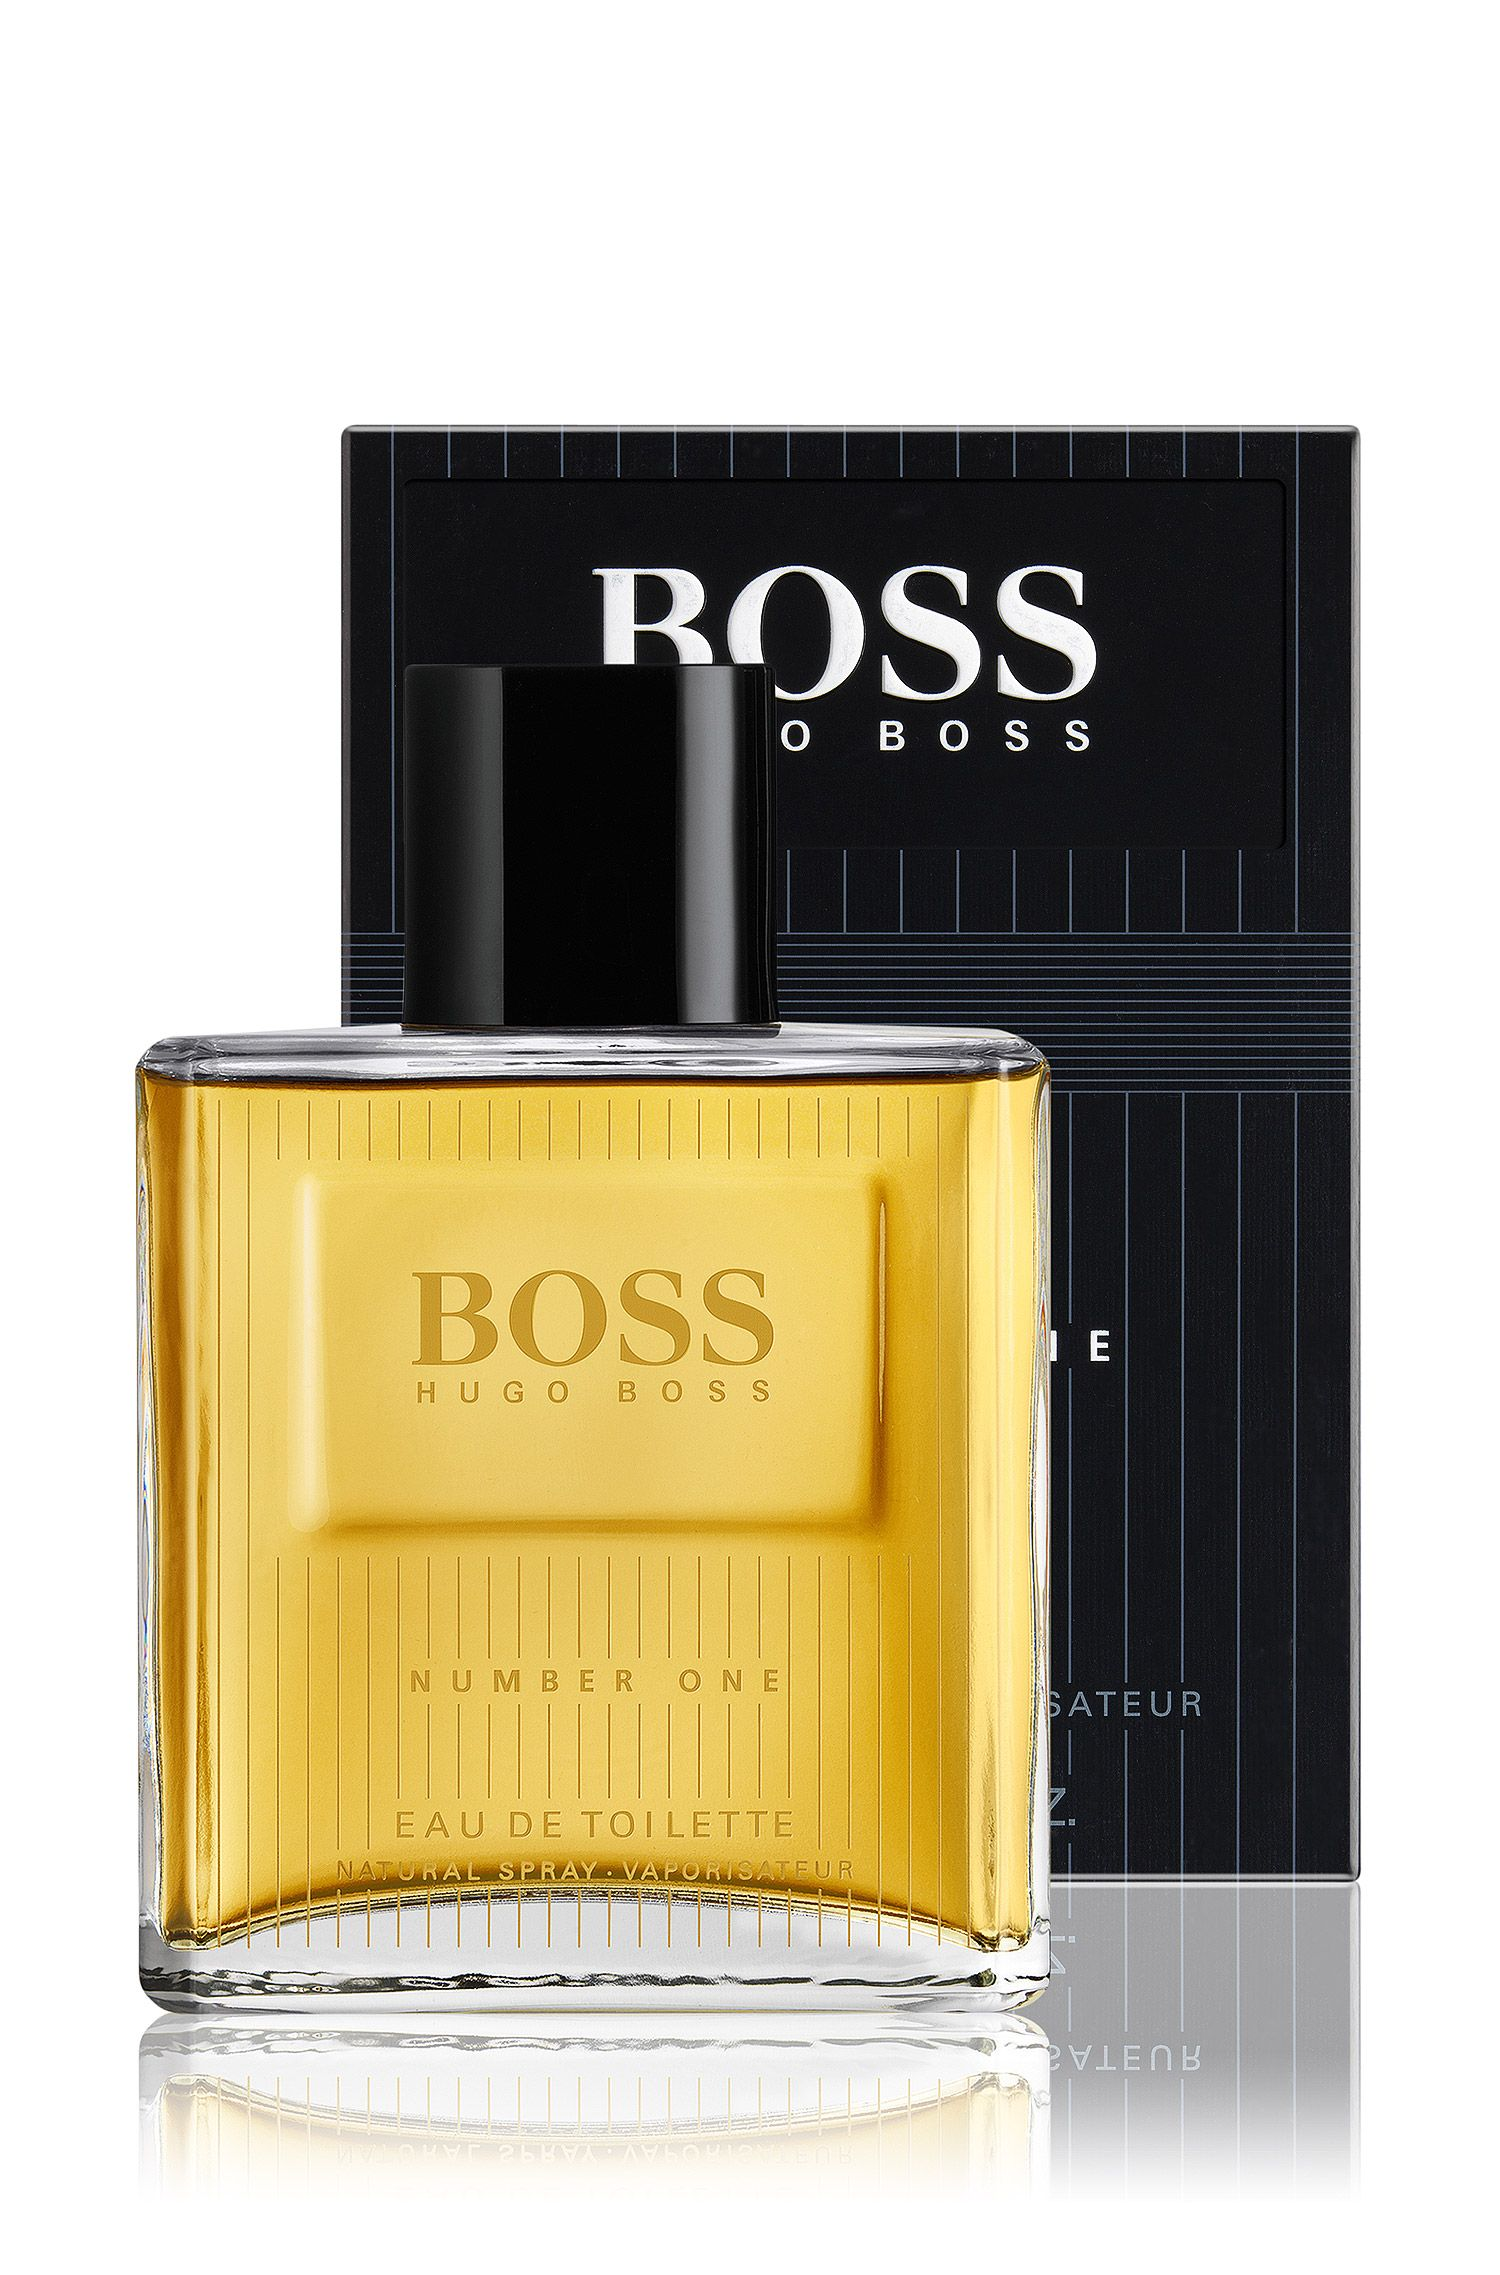 Eau de toilette BOSS Number One da 125 ml